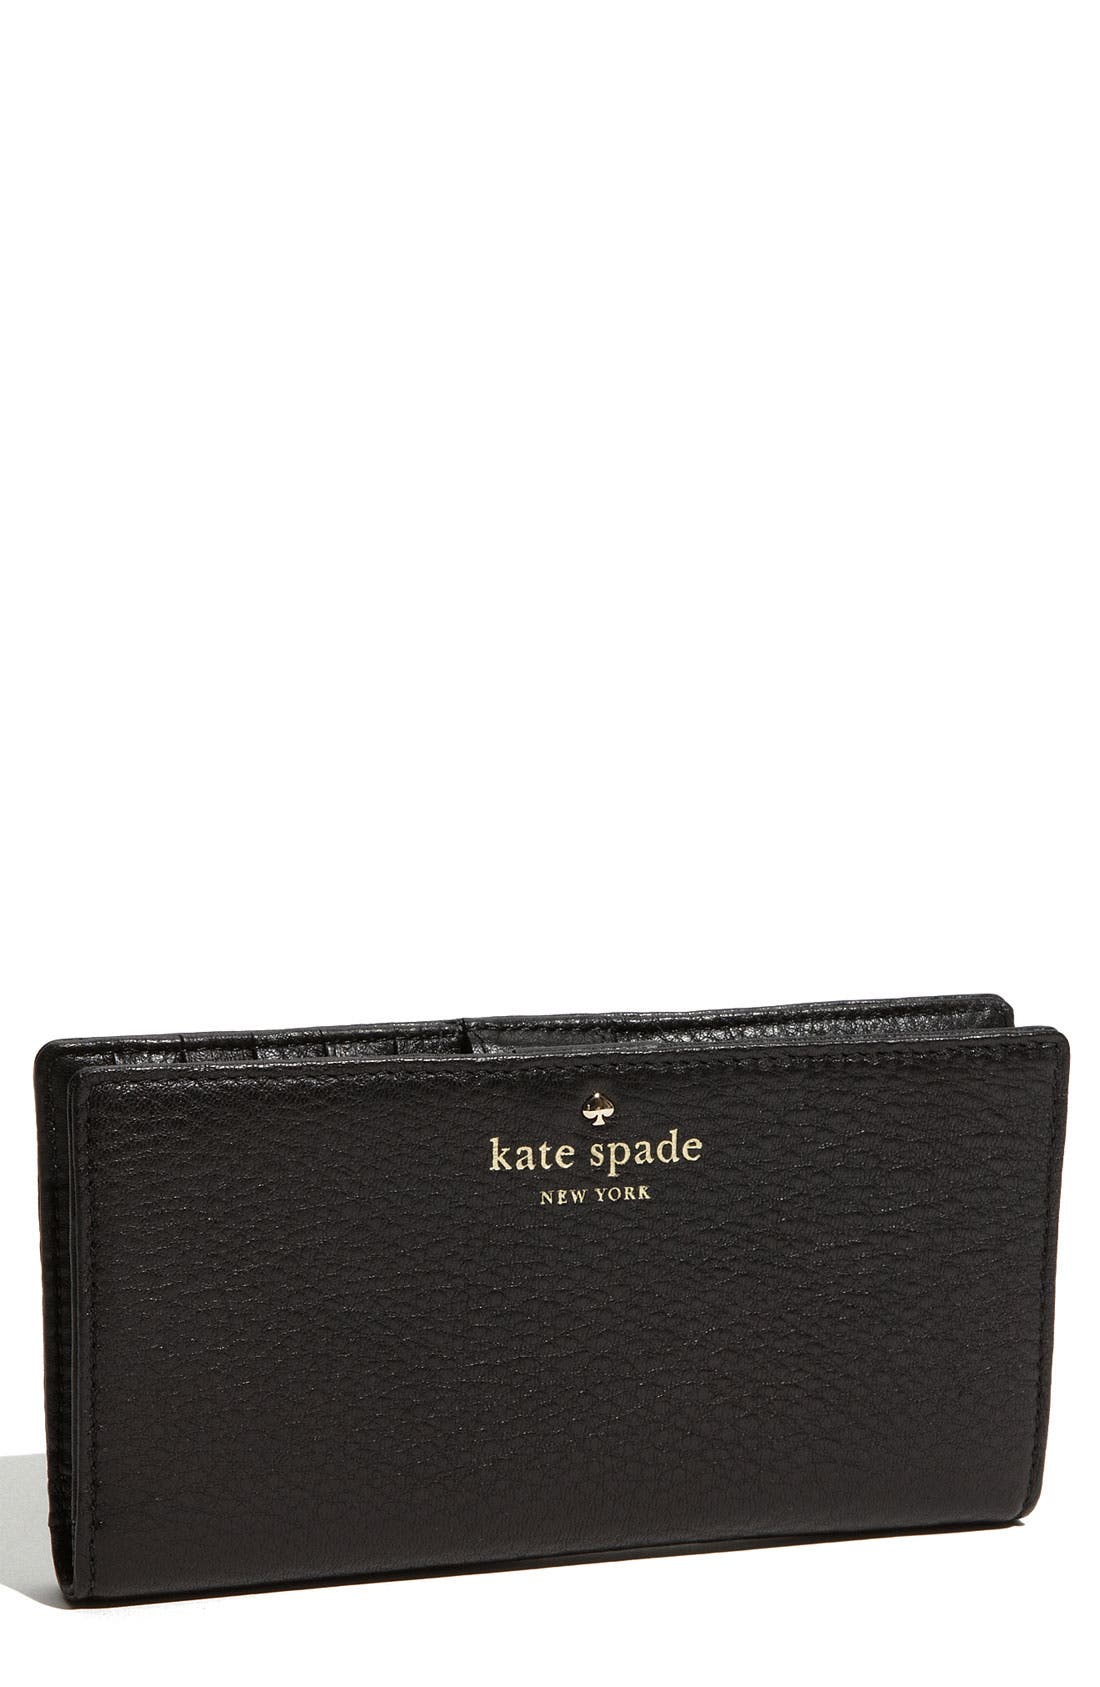 Main Image - kate spade new york 'cobble hill - stacy' wallet